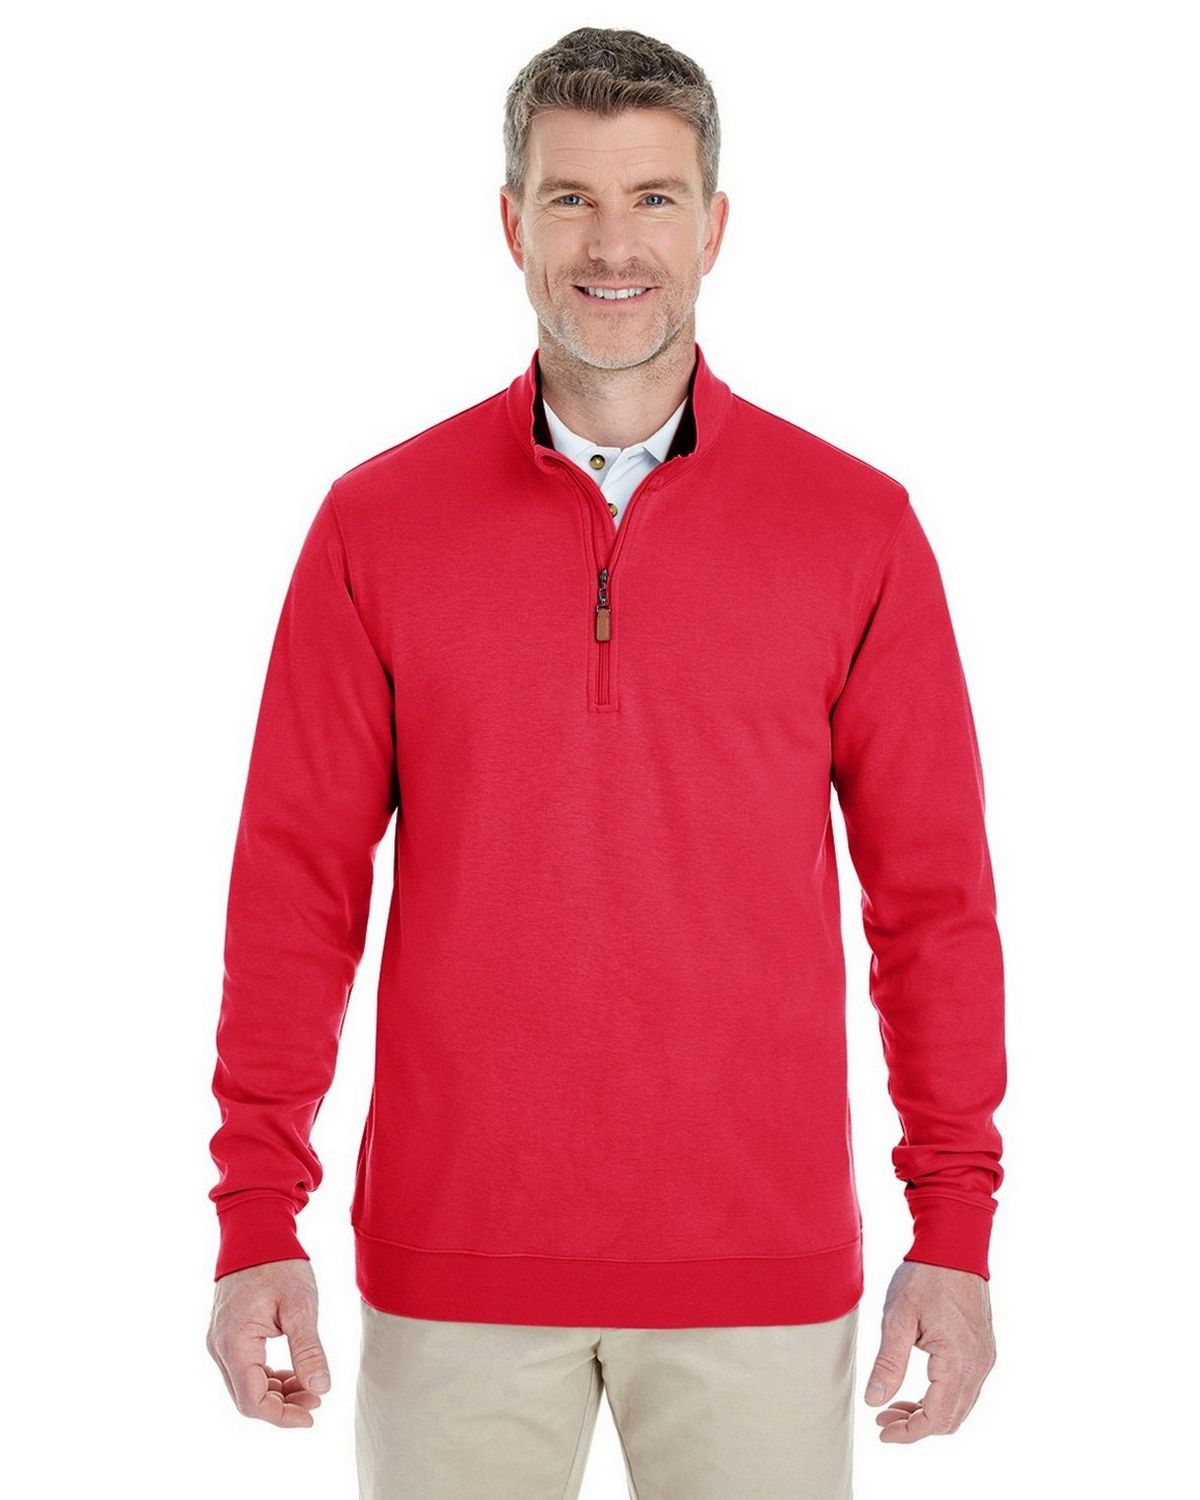 Devon & Jones DG479 Mens Performance Quarter-Zip - Red/ Navy/ Red - L DG479